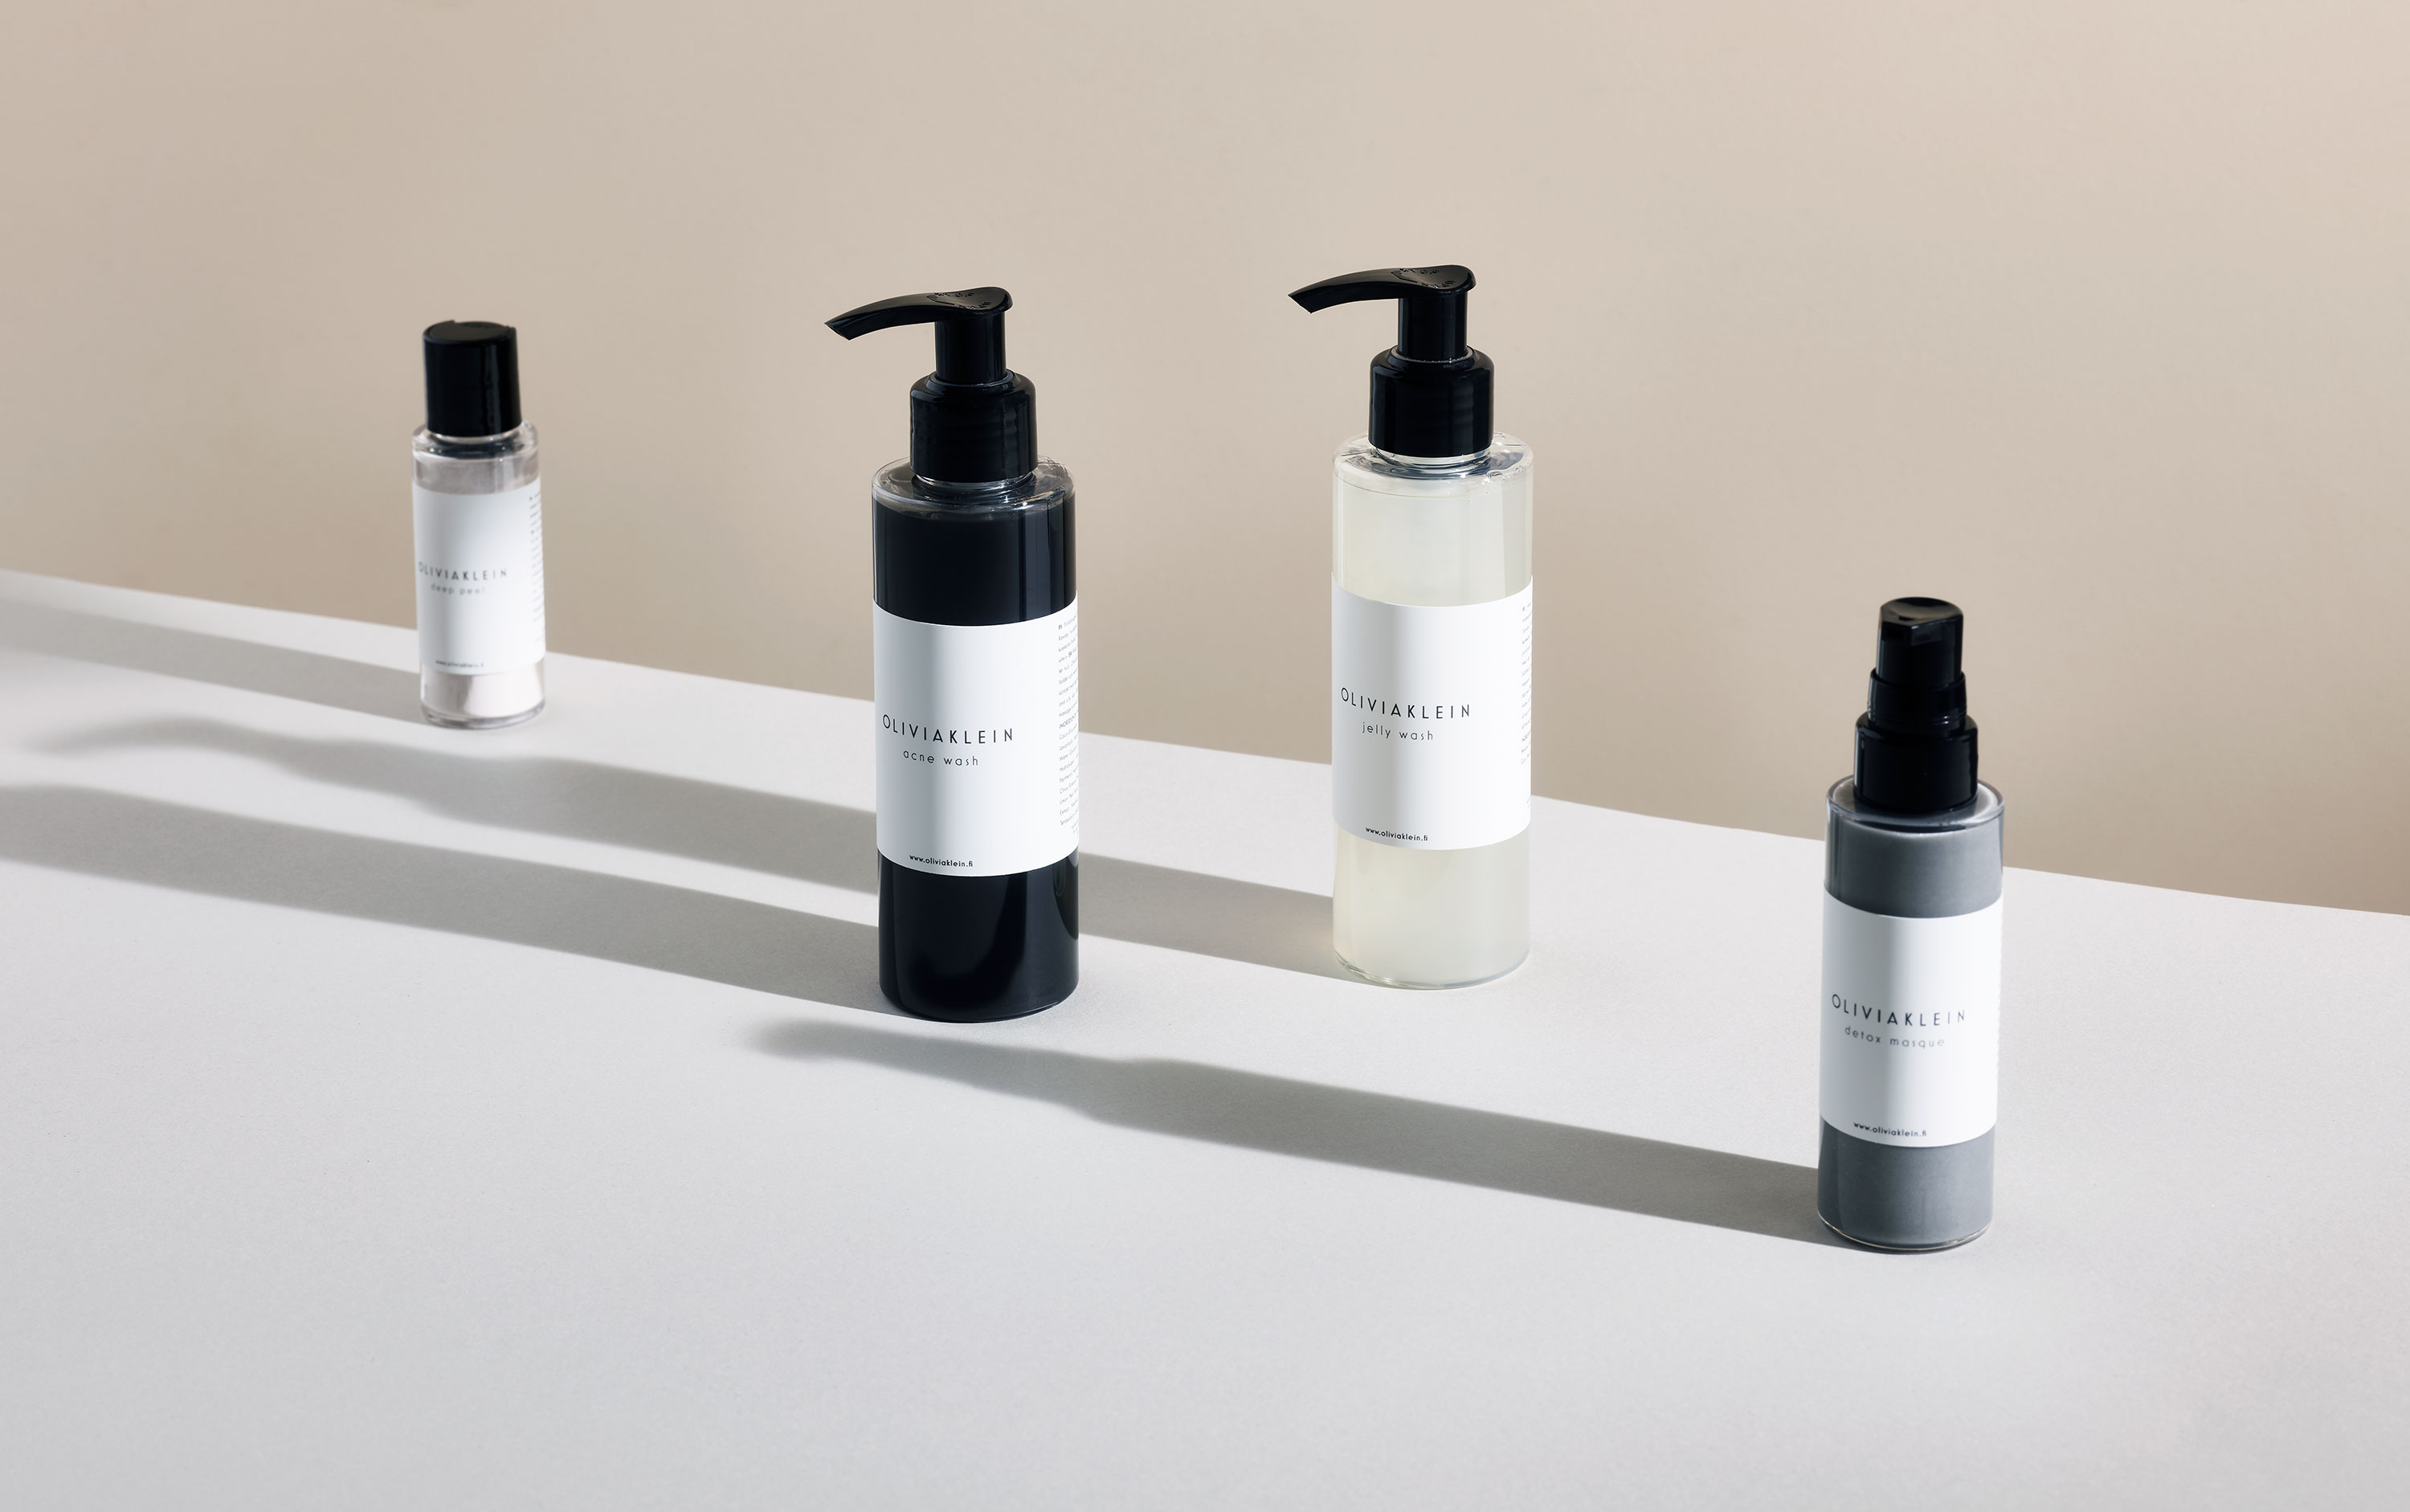 Finnish skin care is supernatural - Business Finland